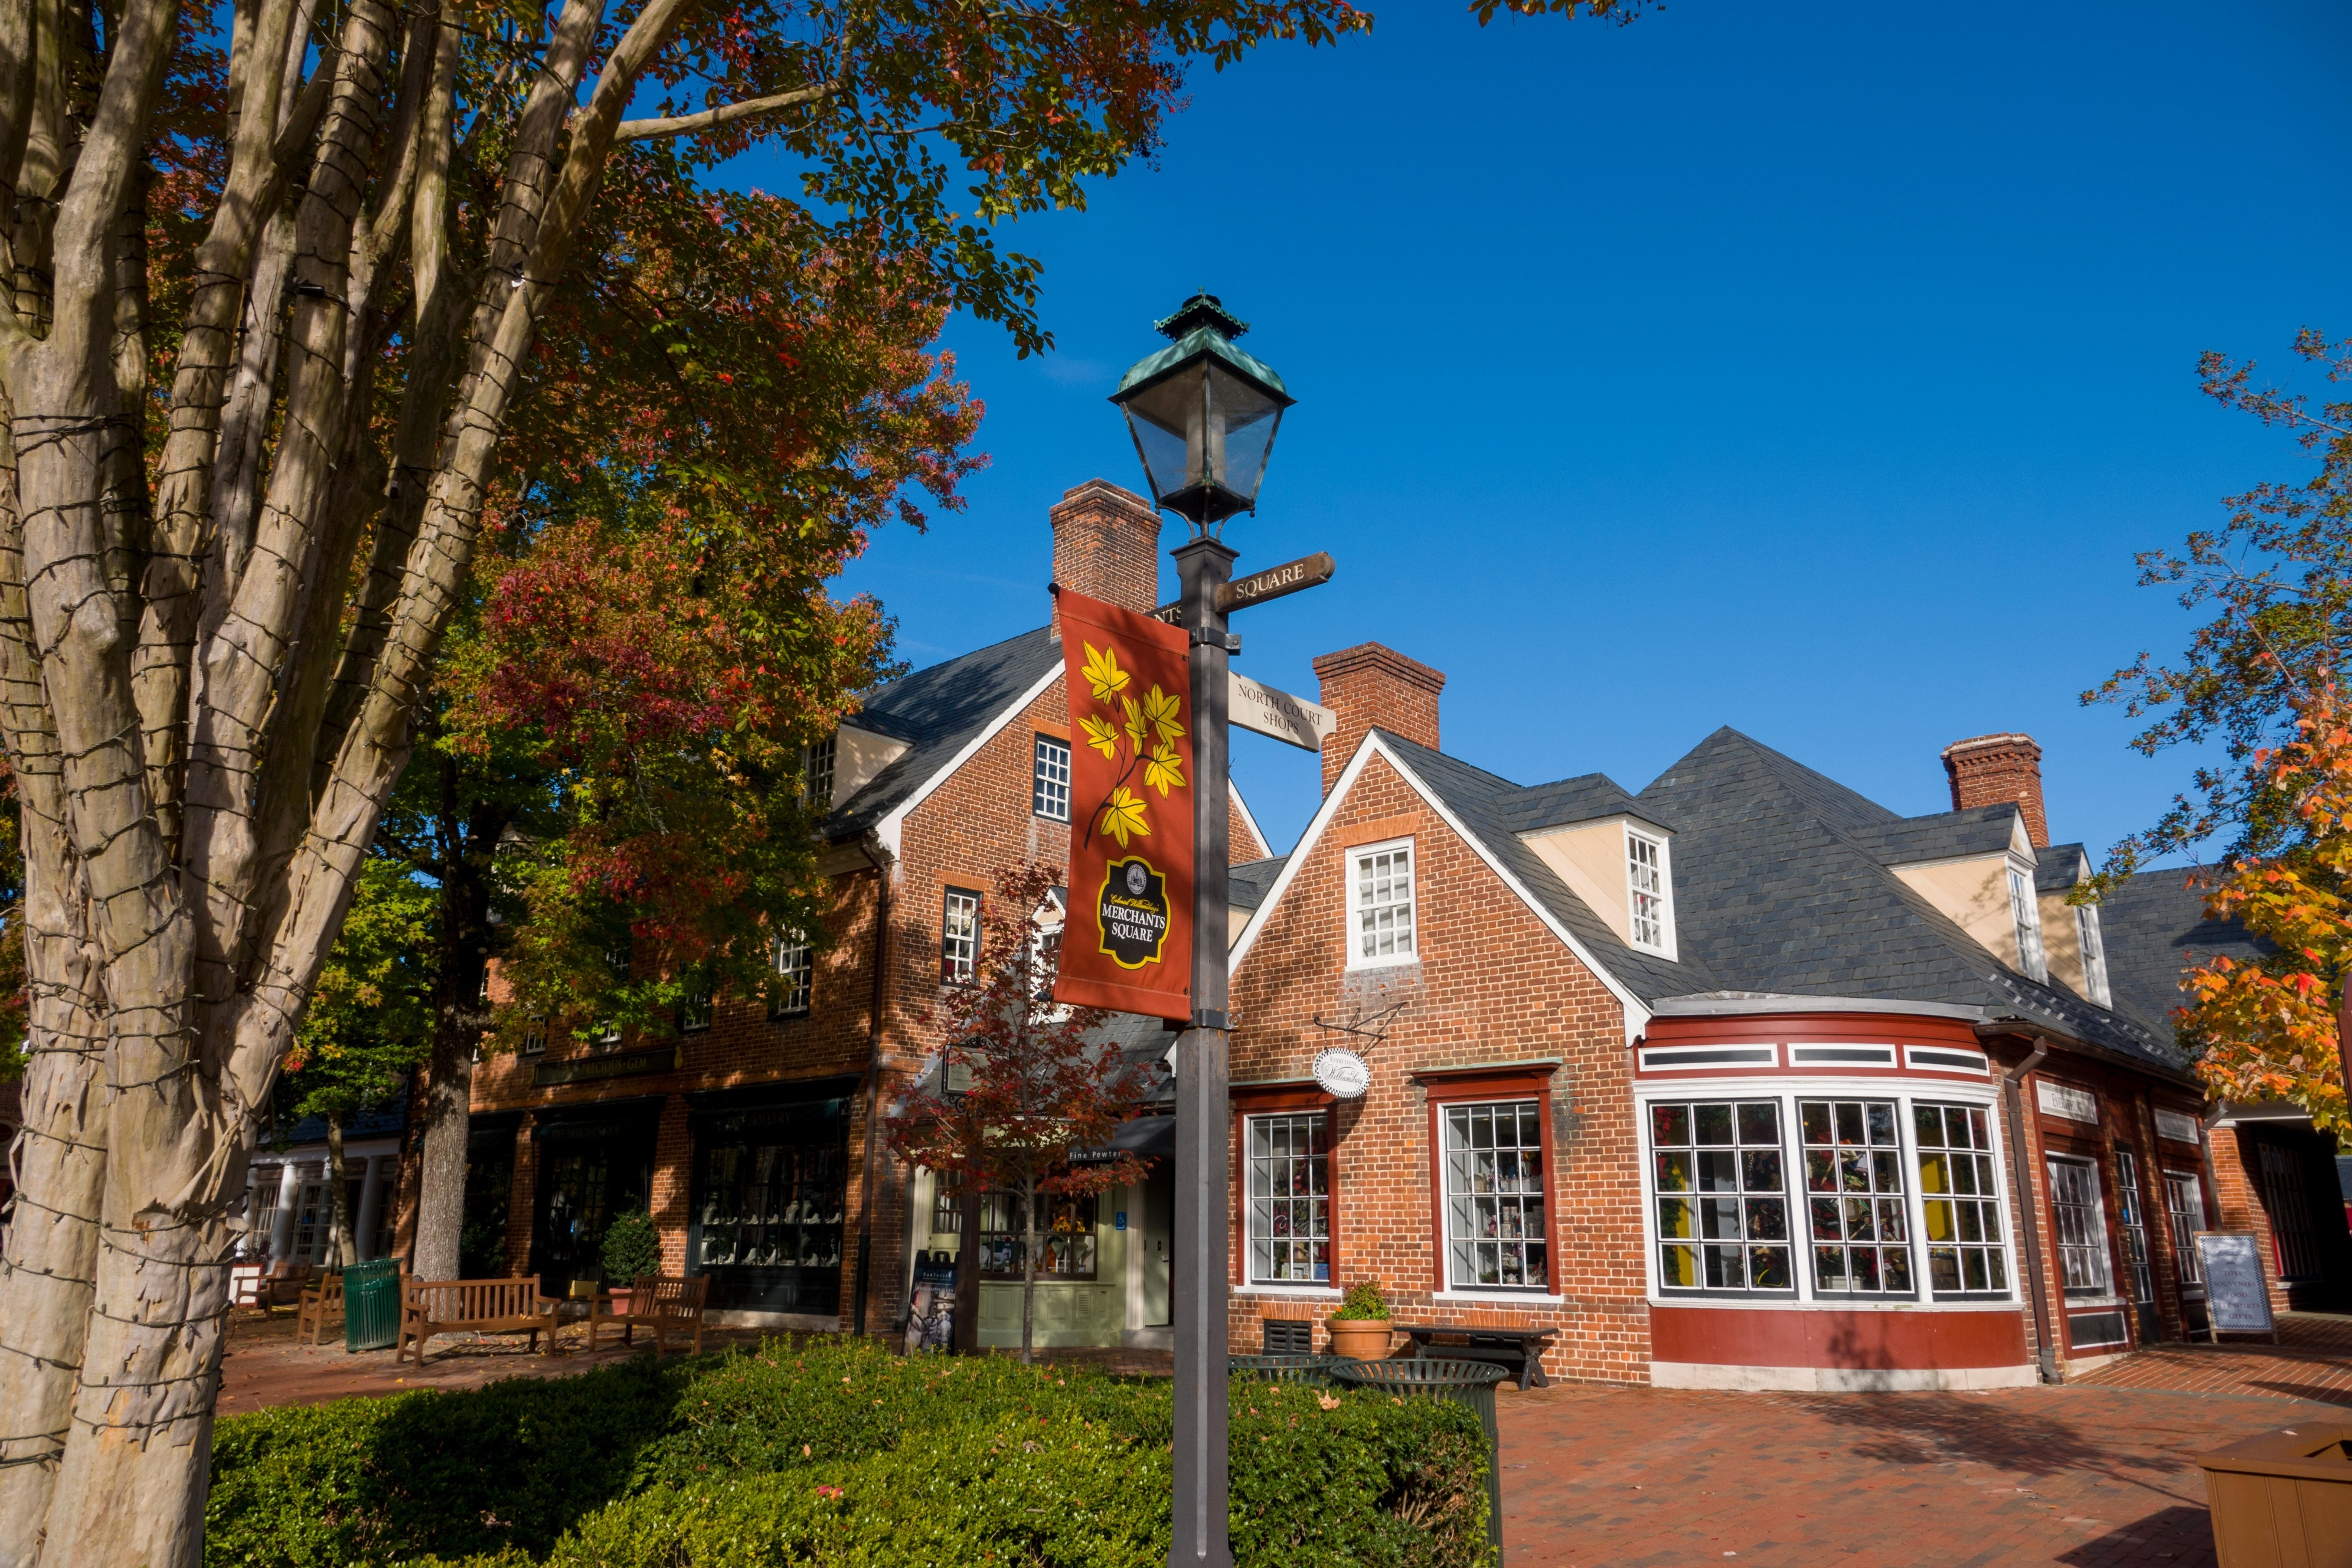 During your visit to Williamsburg, you can do some window-shopping at Merchants Square. Amble around this family-friendly area's picturesque gardens and enjoy its top-notch restaurants.